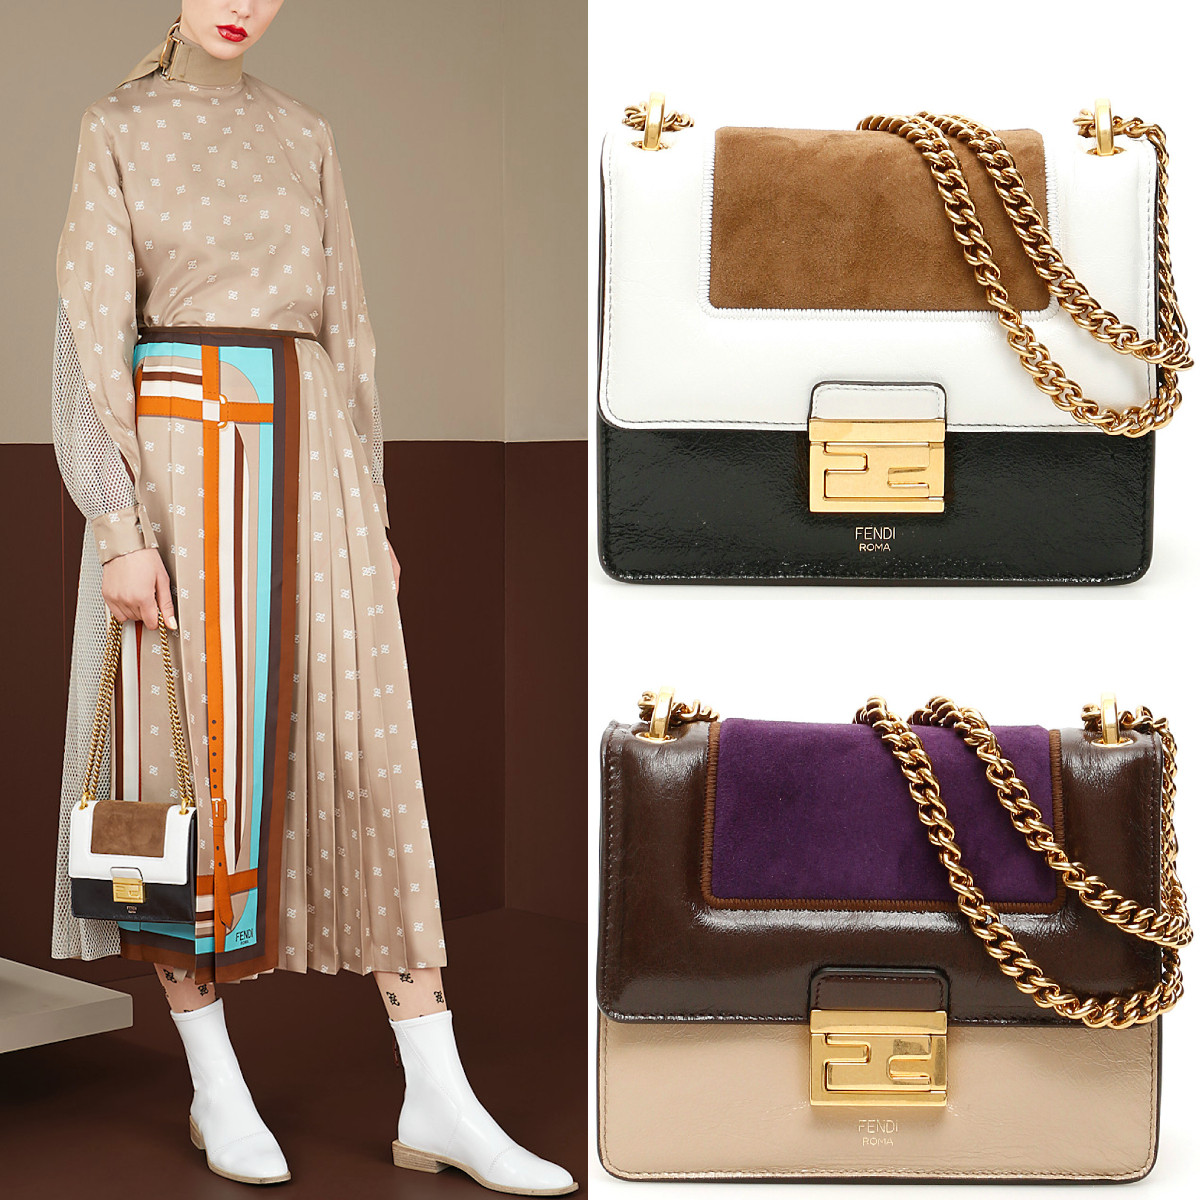 FE2630 KAN U SMALL IN LEATHER & SUEDE (FENDI/ショルダーバッグ・ポシェット) 8BT312A9X7F18XP  8BT312A9X7F18XM